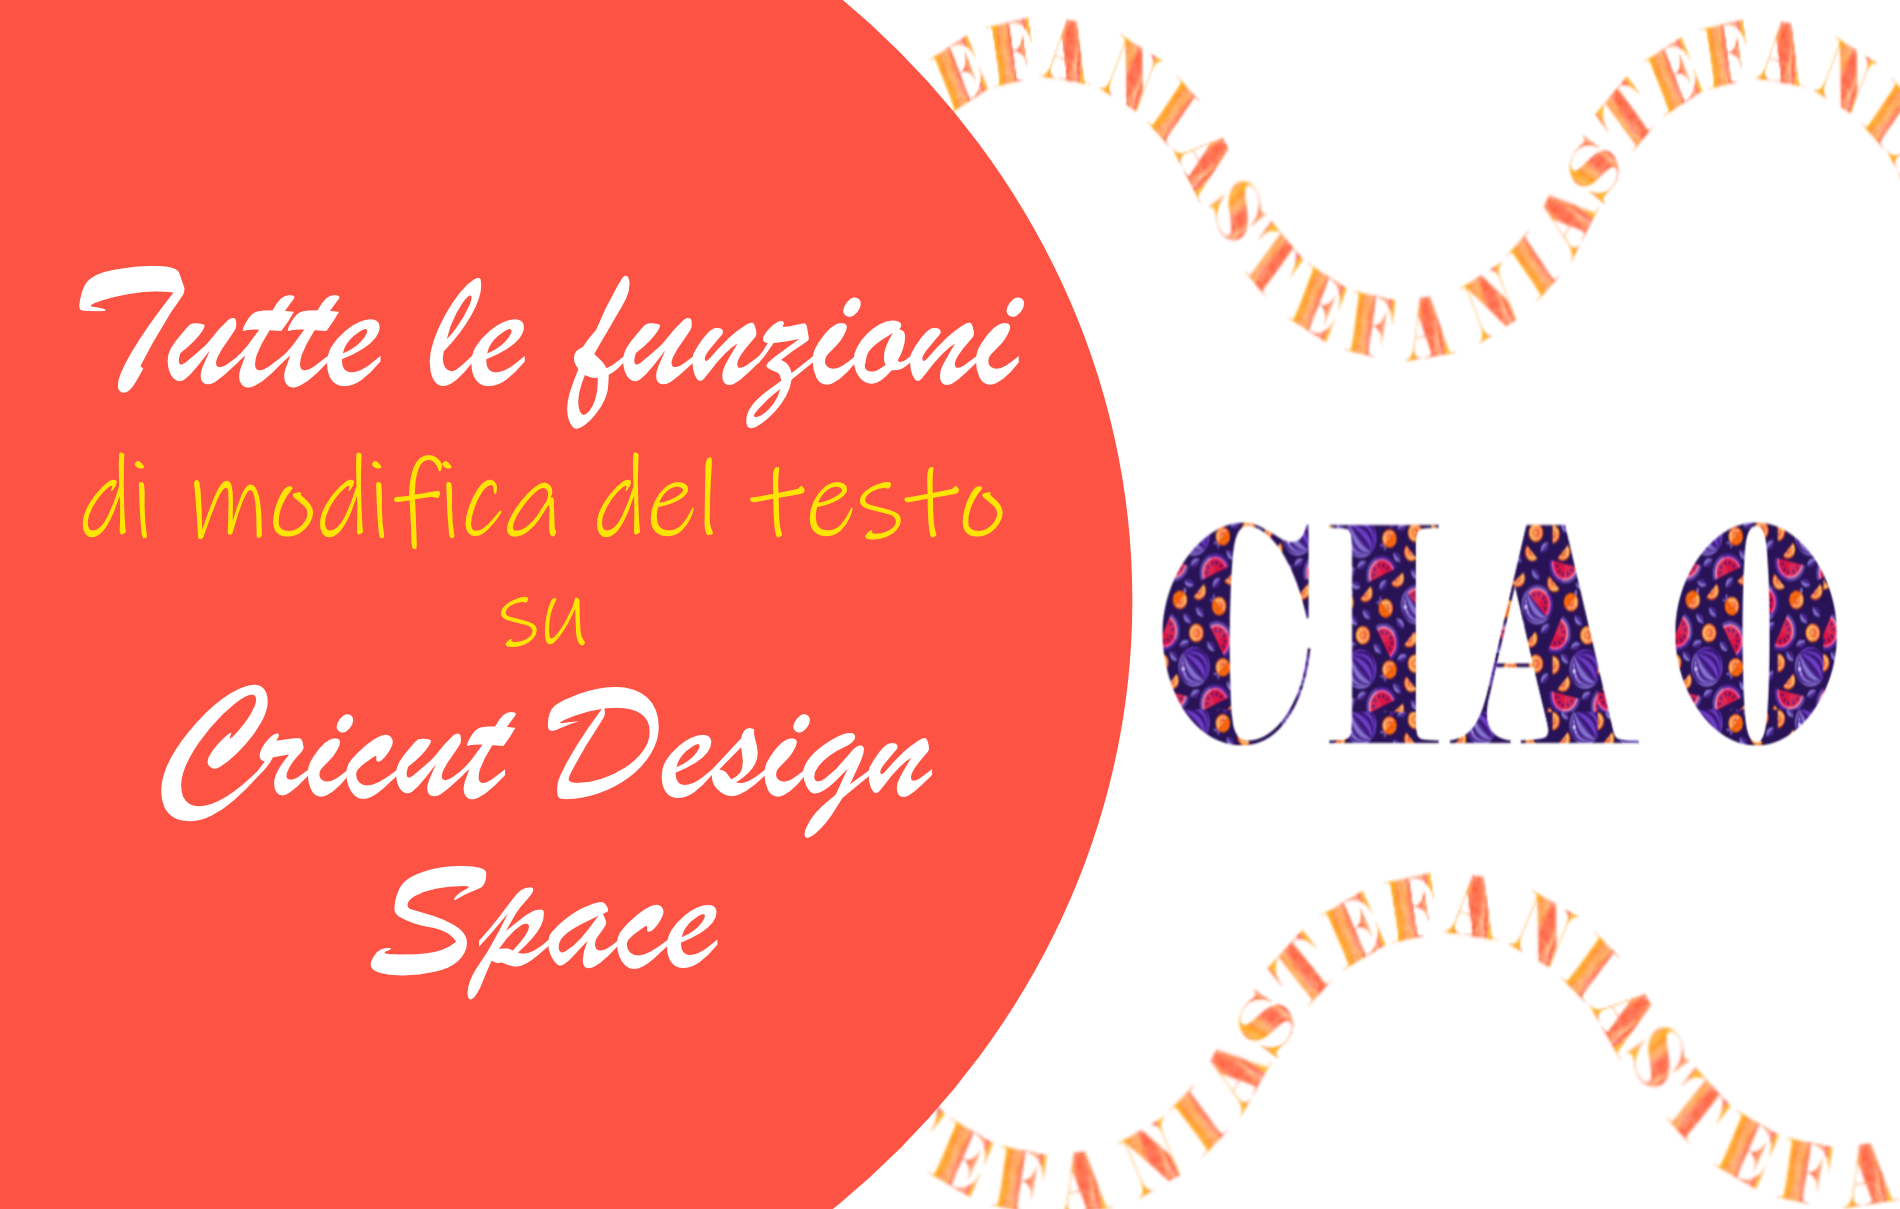 Testo Cricut Design Space